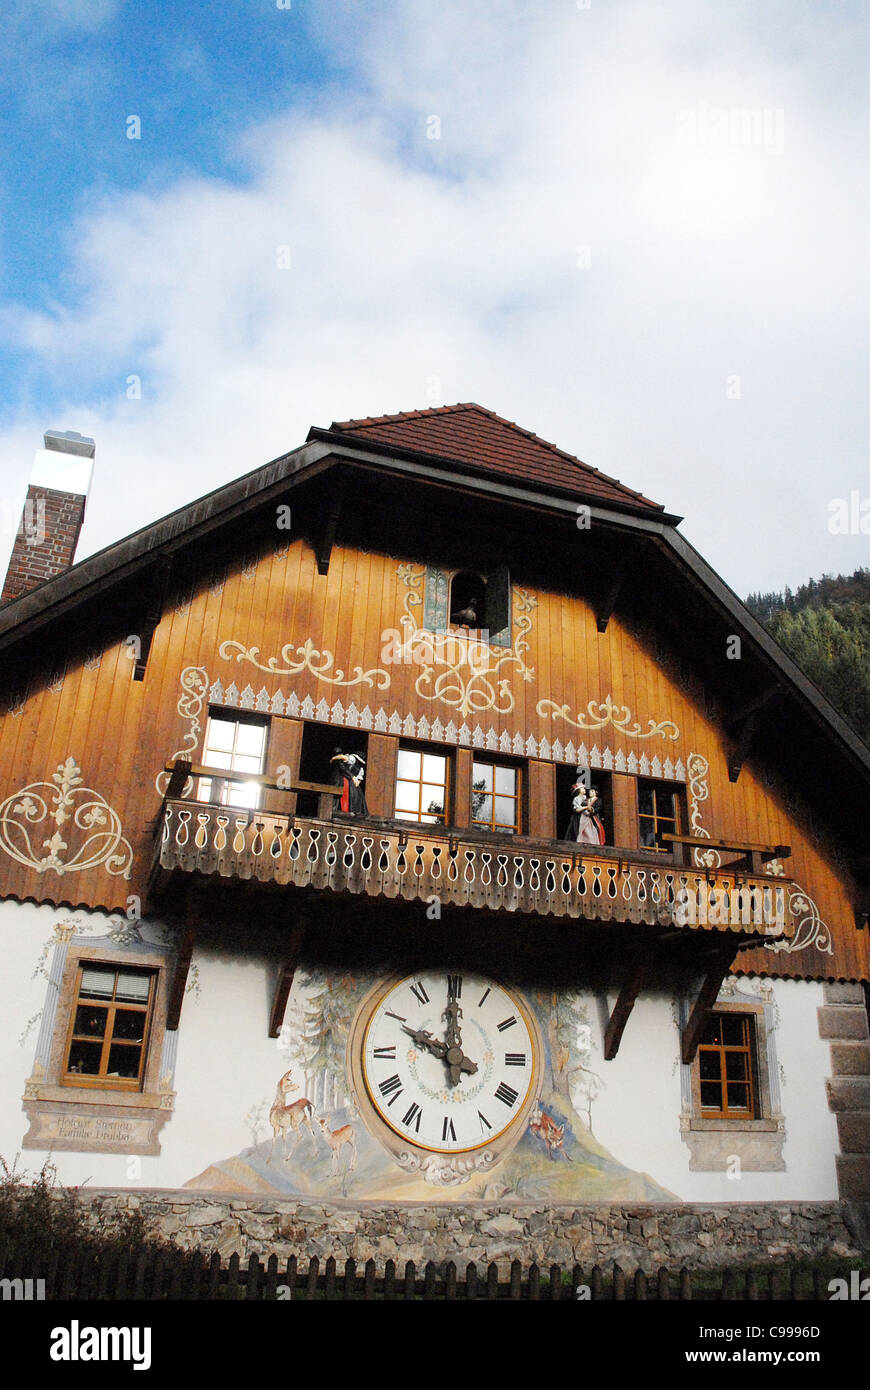 Giant cuckoo's clock on the wall of a traditional Black Forest house at Hofgut Sternen in Breitnau, Höllental, - Stock Image